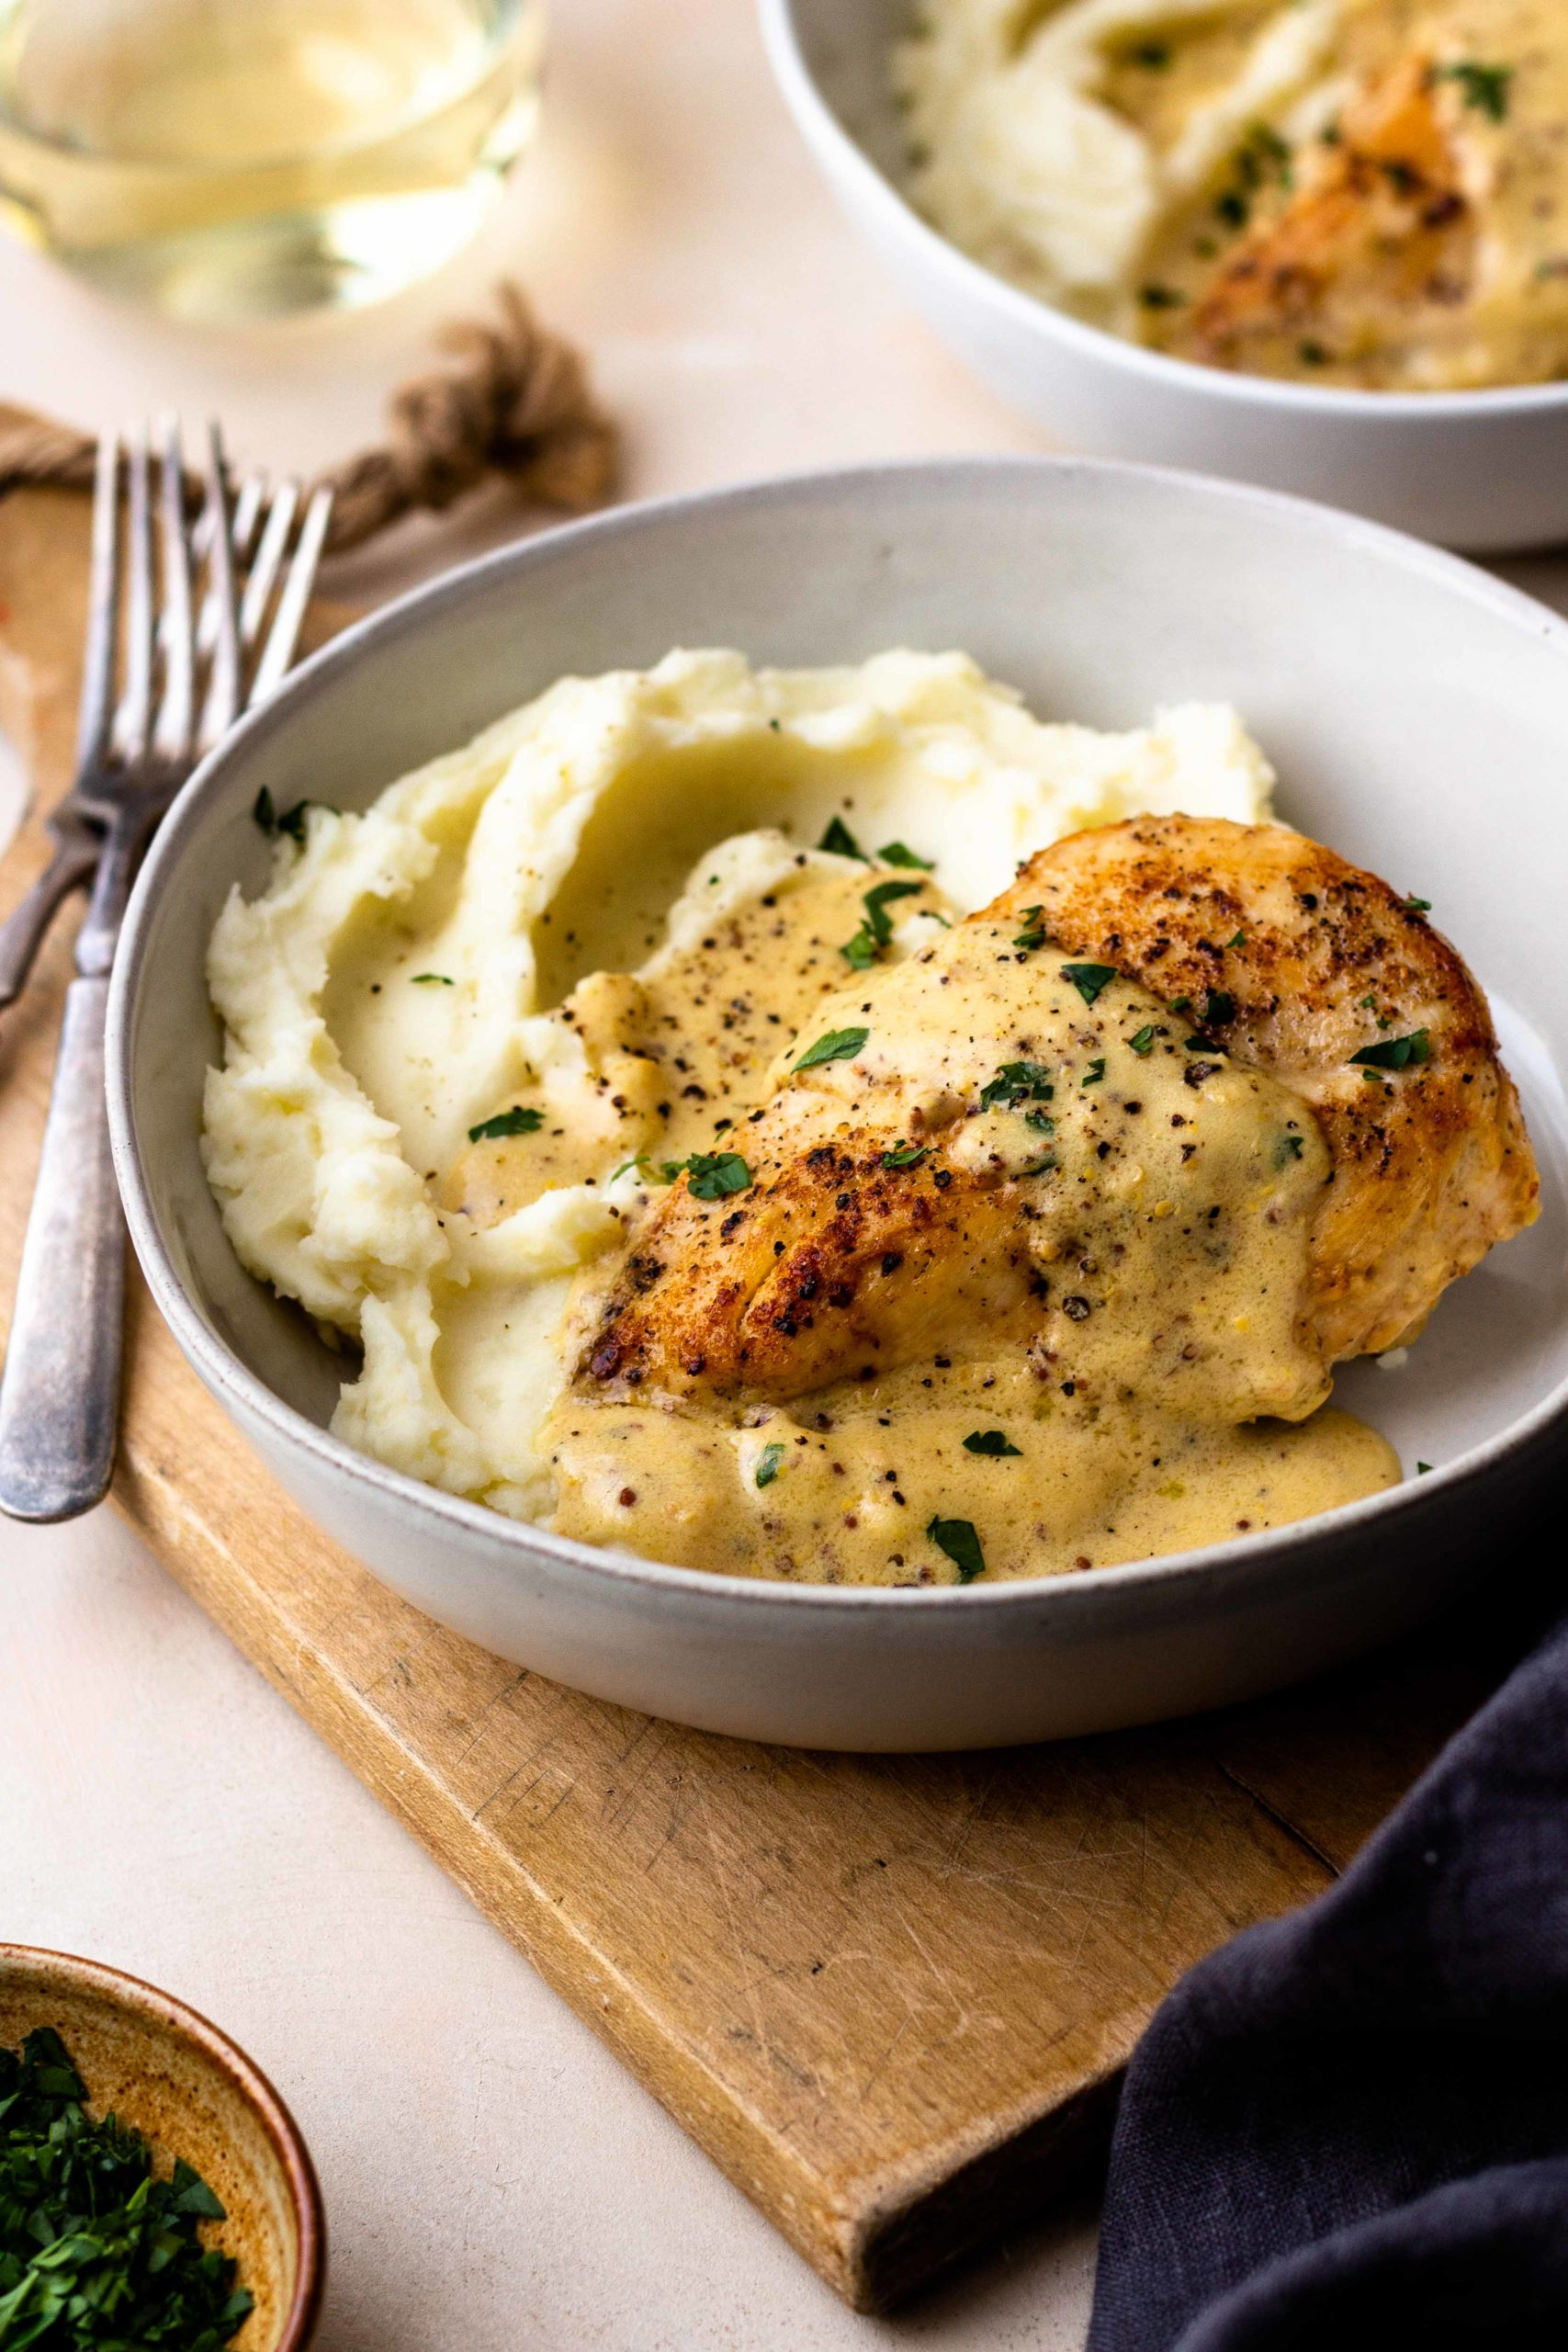 Tender and juicy chicken breasts smothered in the most insanely delicious dijon mustard cream sauce served over fluffy mashed potatoes. The chicken and sauce are all made in one skillet, making it an easy dinner. Perfect for date night or a casual weeknight night. Everyone will love this recipe!